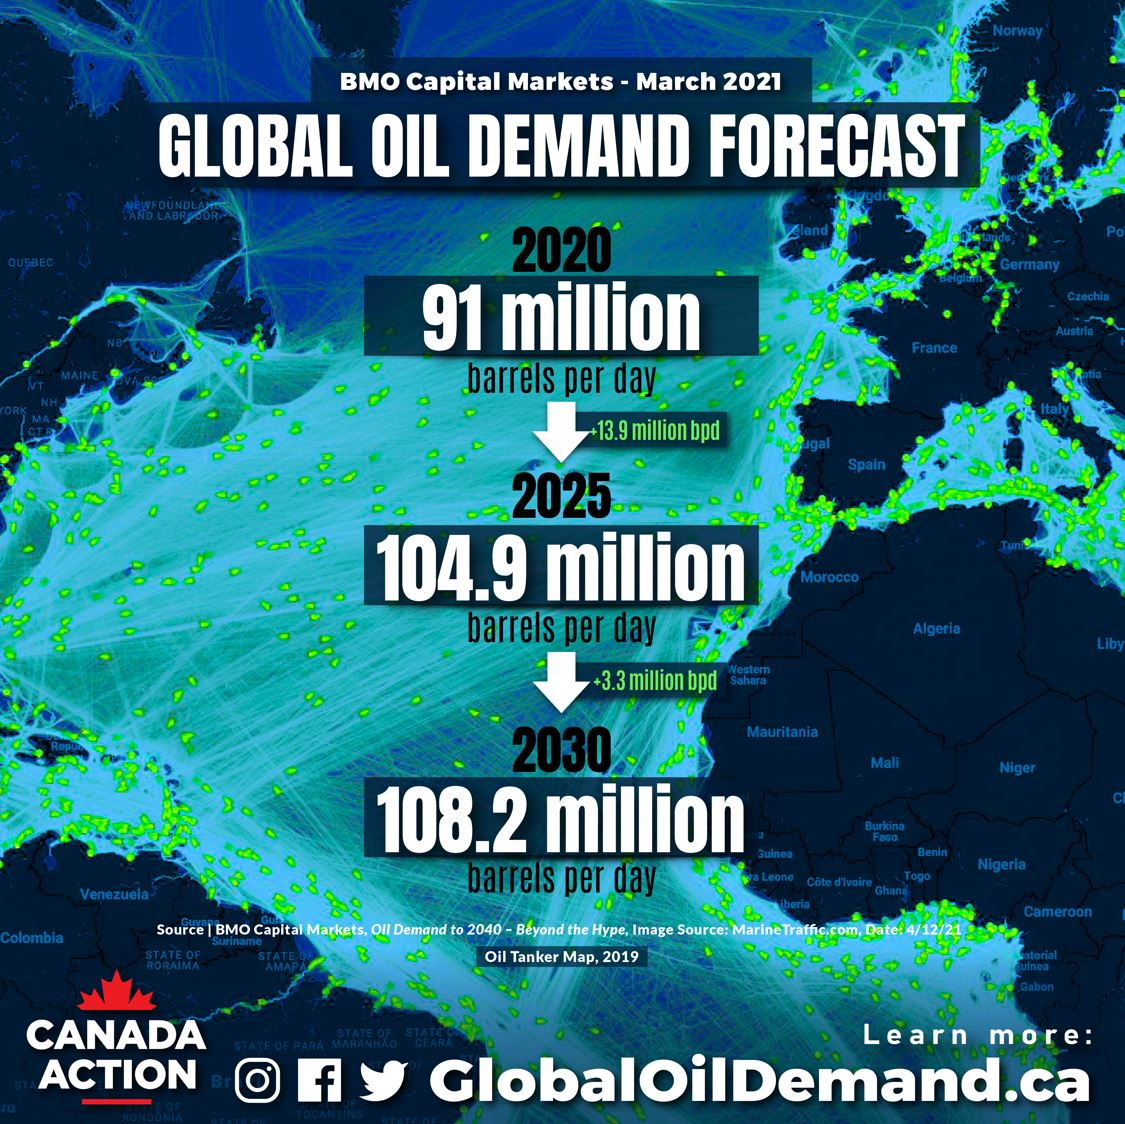 BMO Capital Markets - Global Oil Demand Projection Through 2030